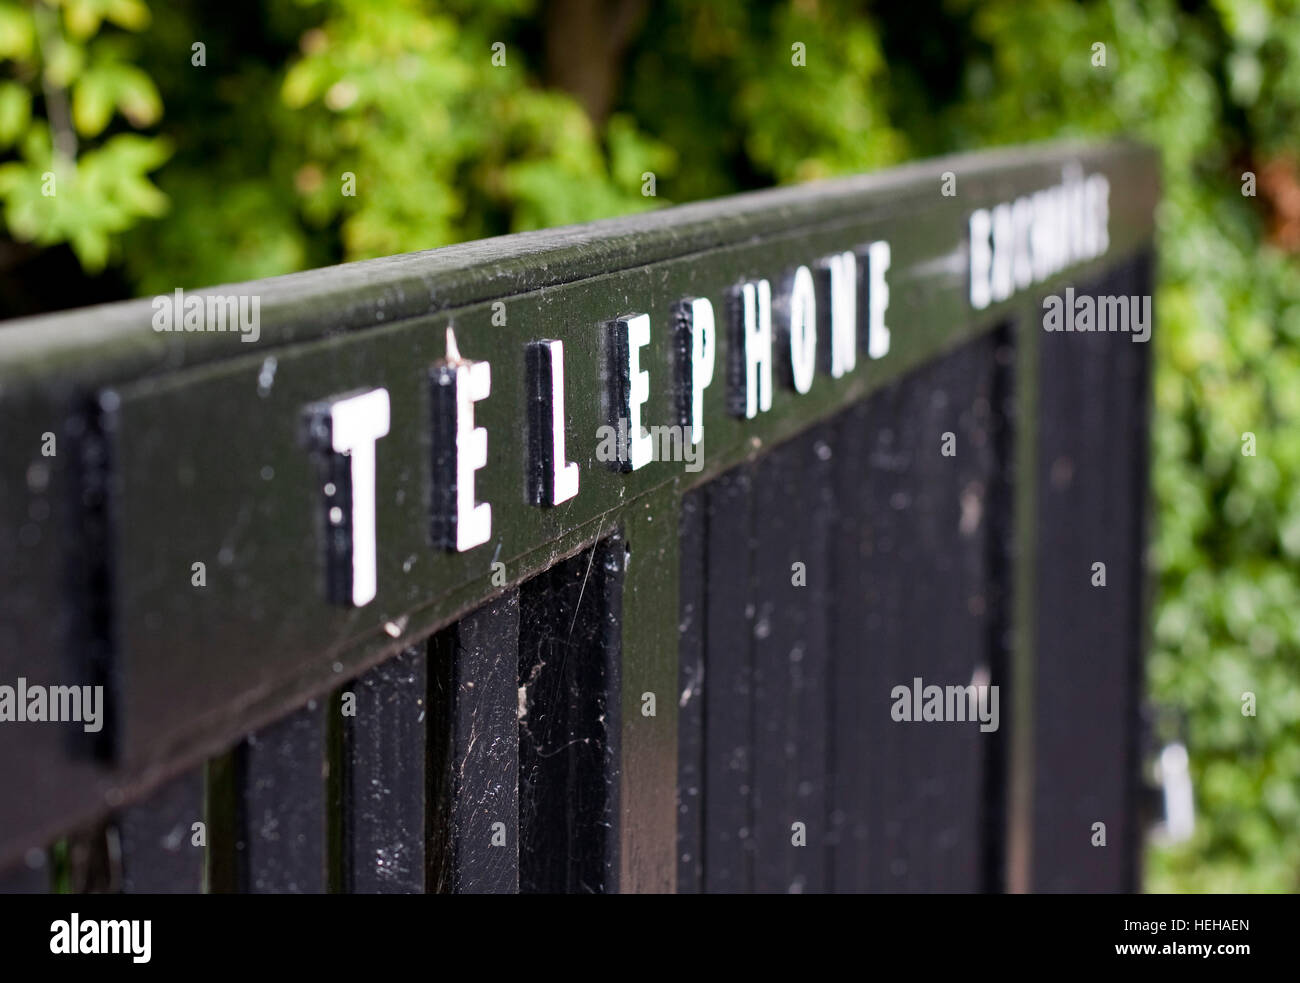 Raised letters spelling Telephone Exchange on a gate Stock Photo